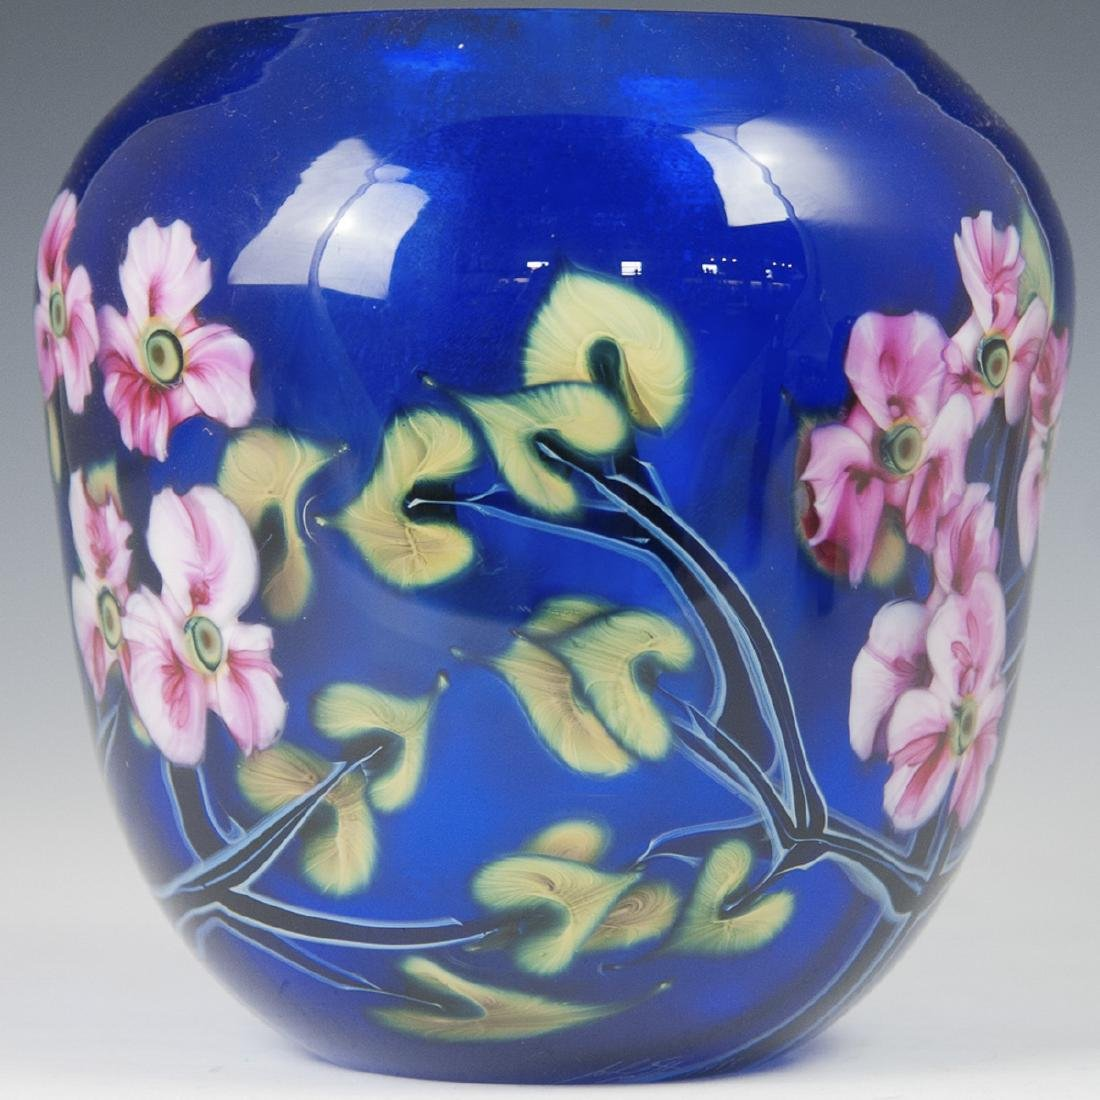 John Lotton Art Glass Vase